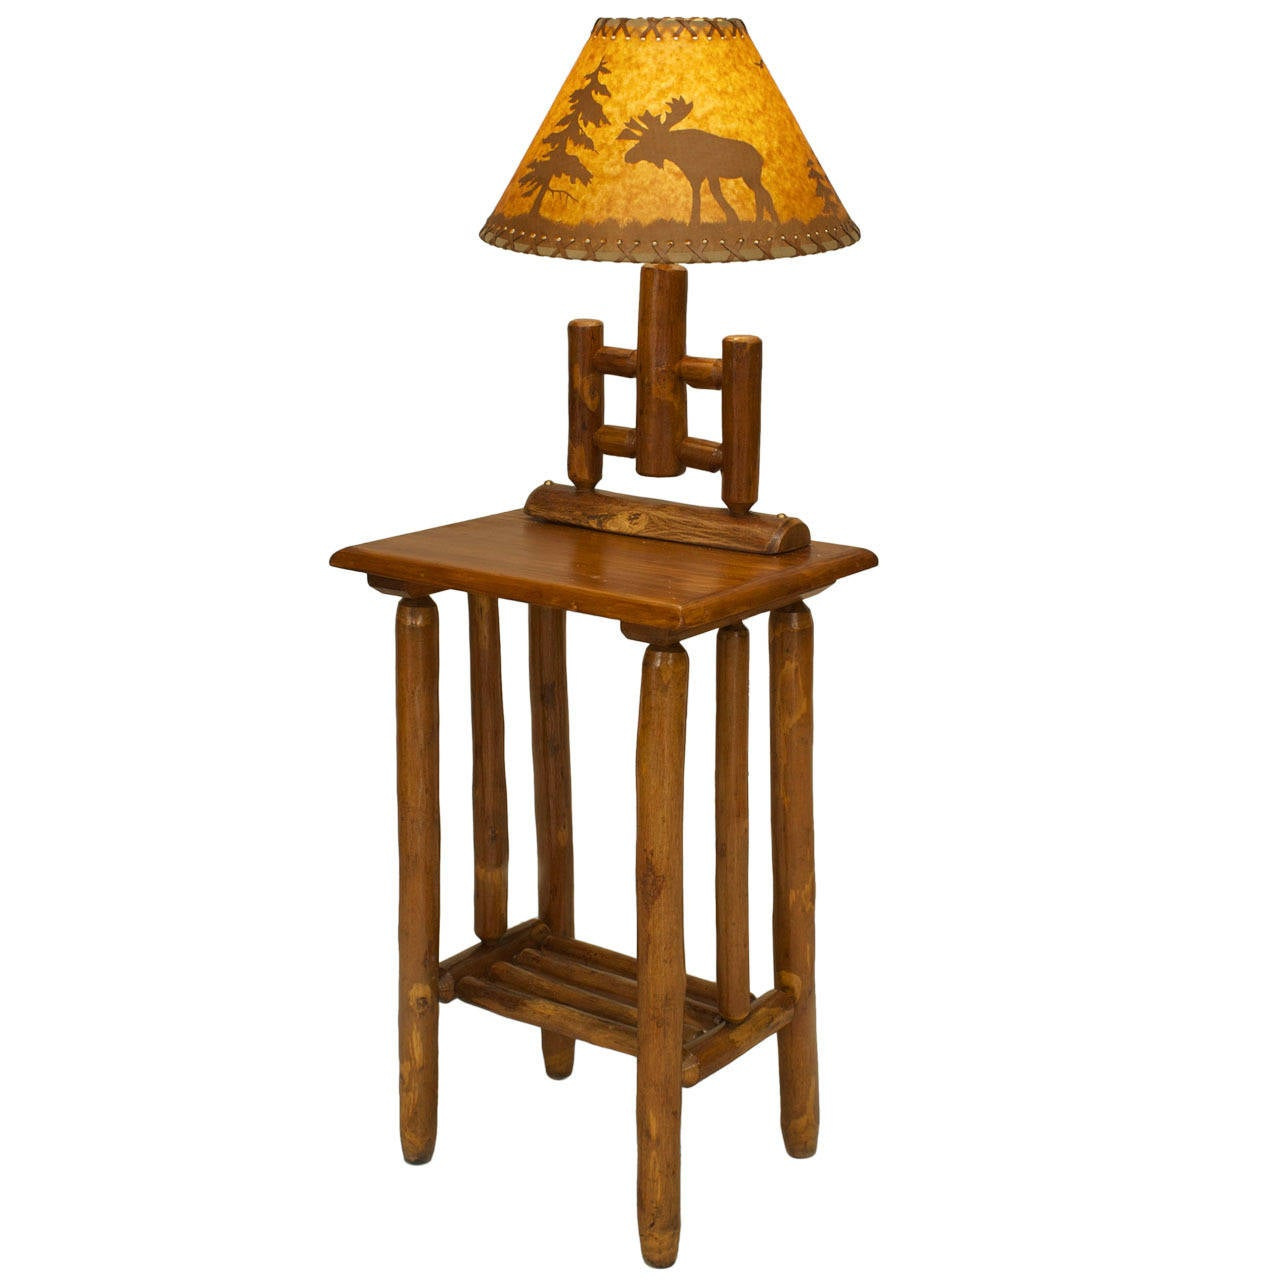 small th c american rustic end table with mounted lamp at stdibs - small th c american rustic end table with mounted lamp